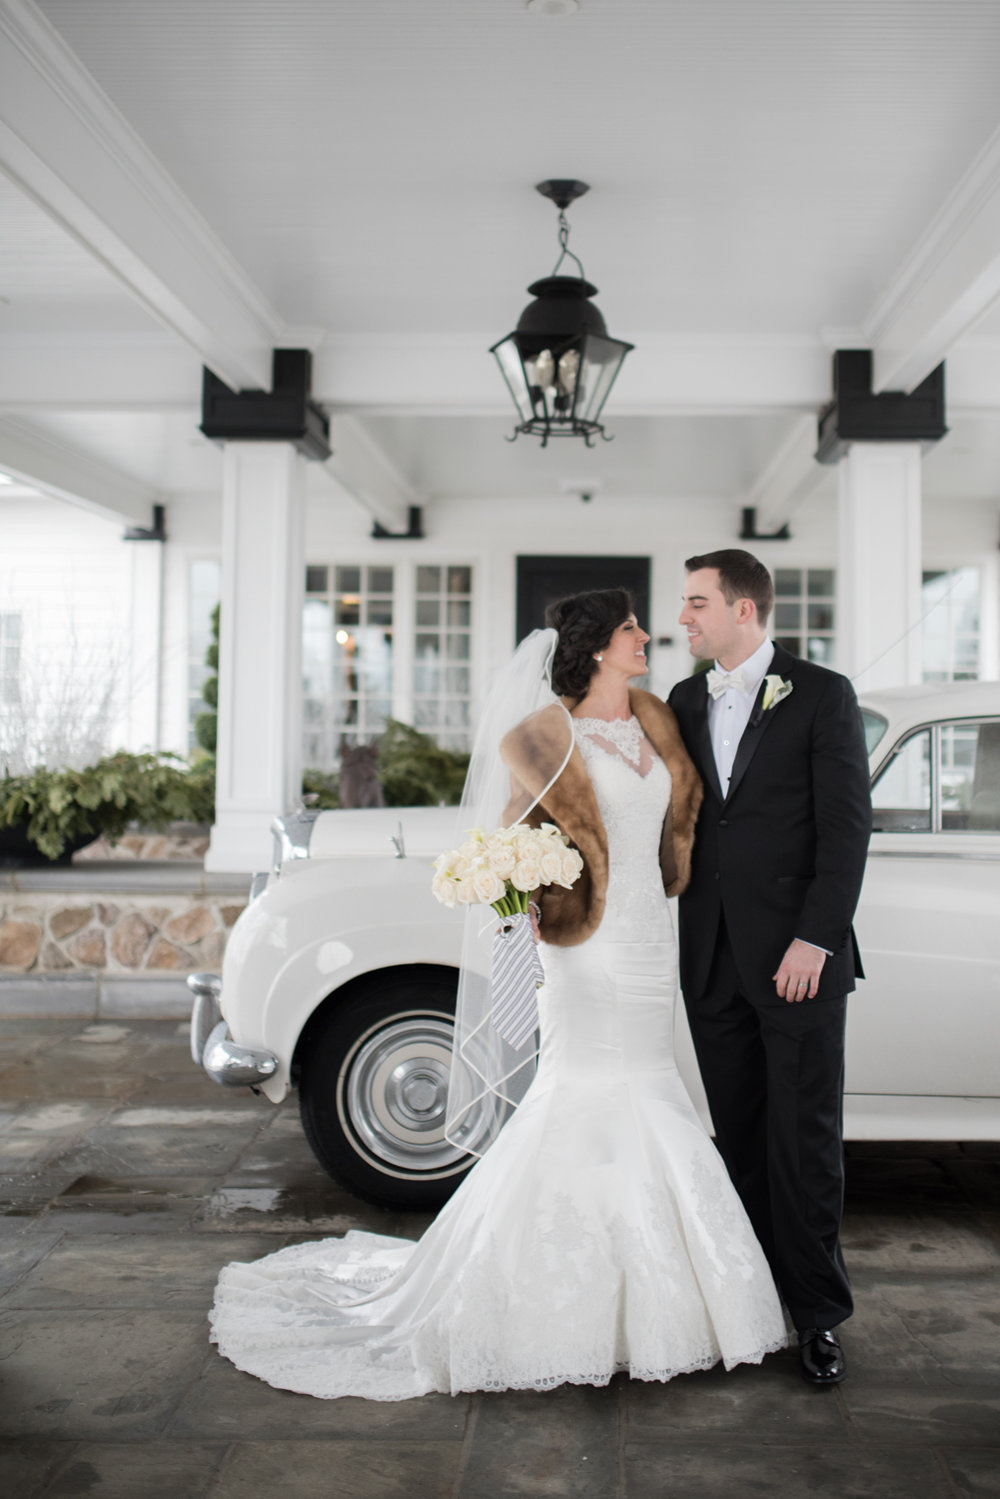 Michelle + joe - The Ryland Inn, New Jersey